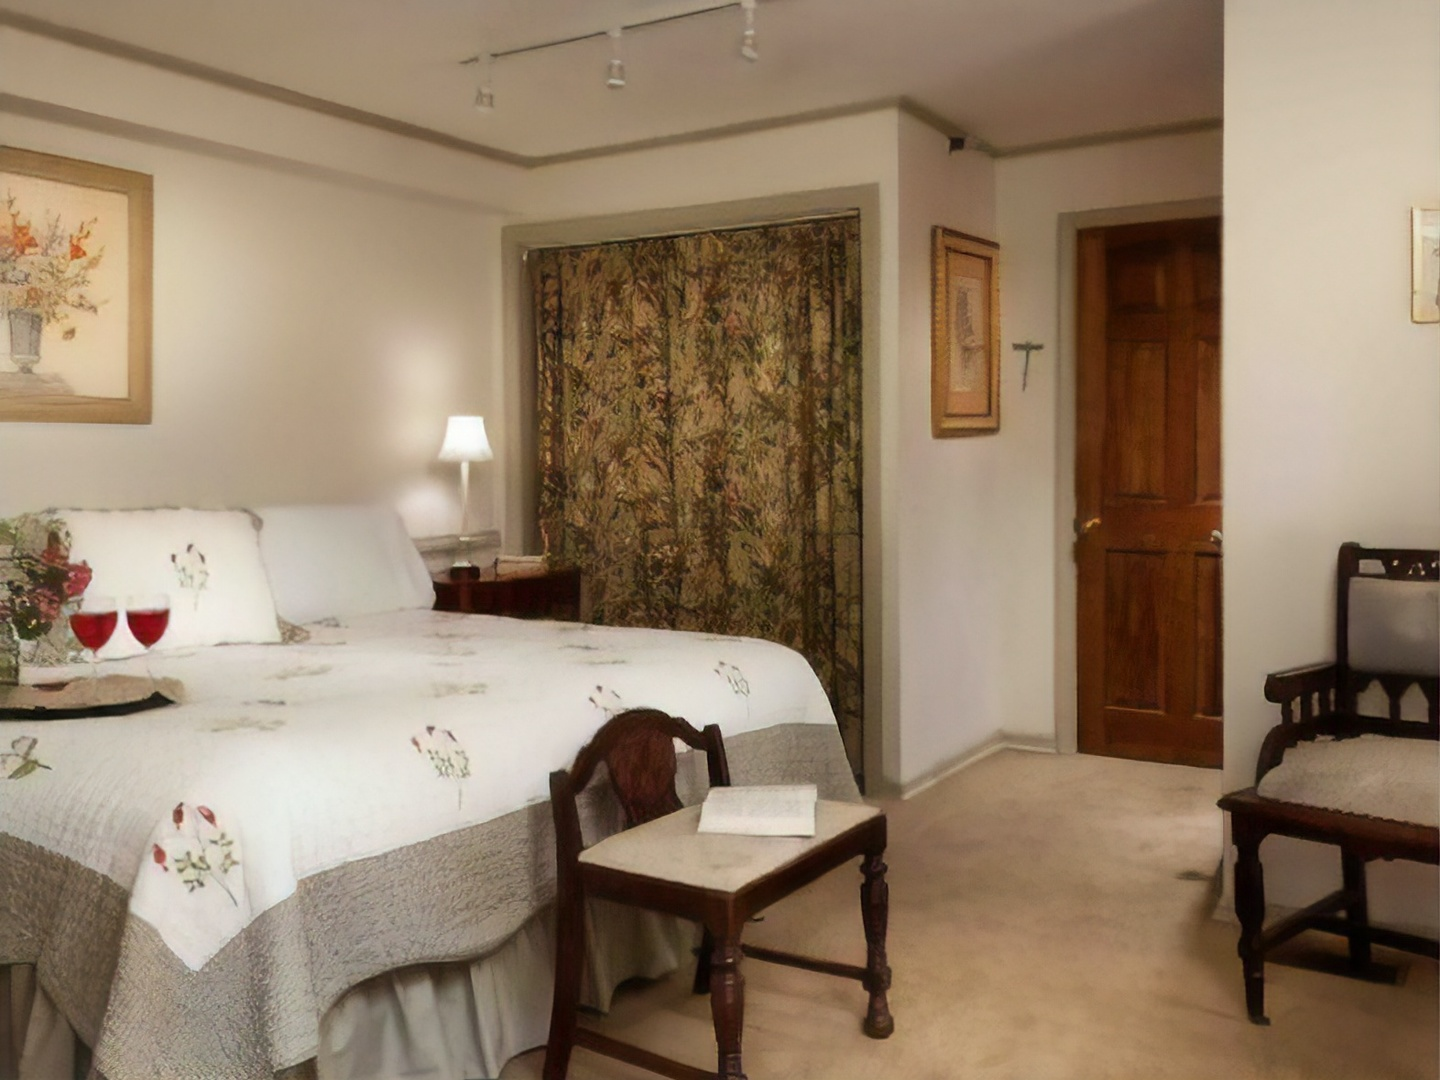 A bedroom with a large bed in a hotel room at The Rookwood Inn.